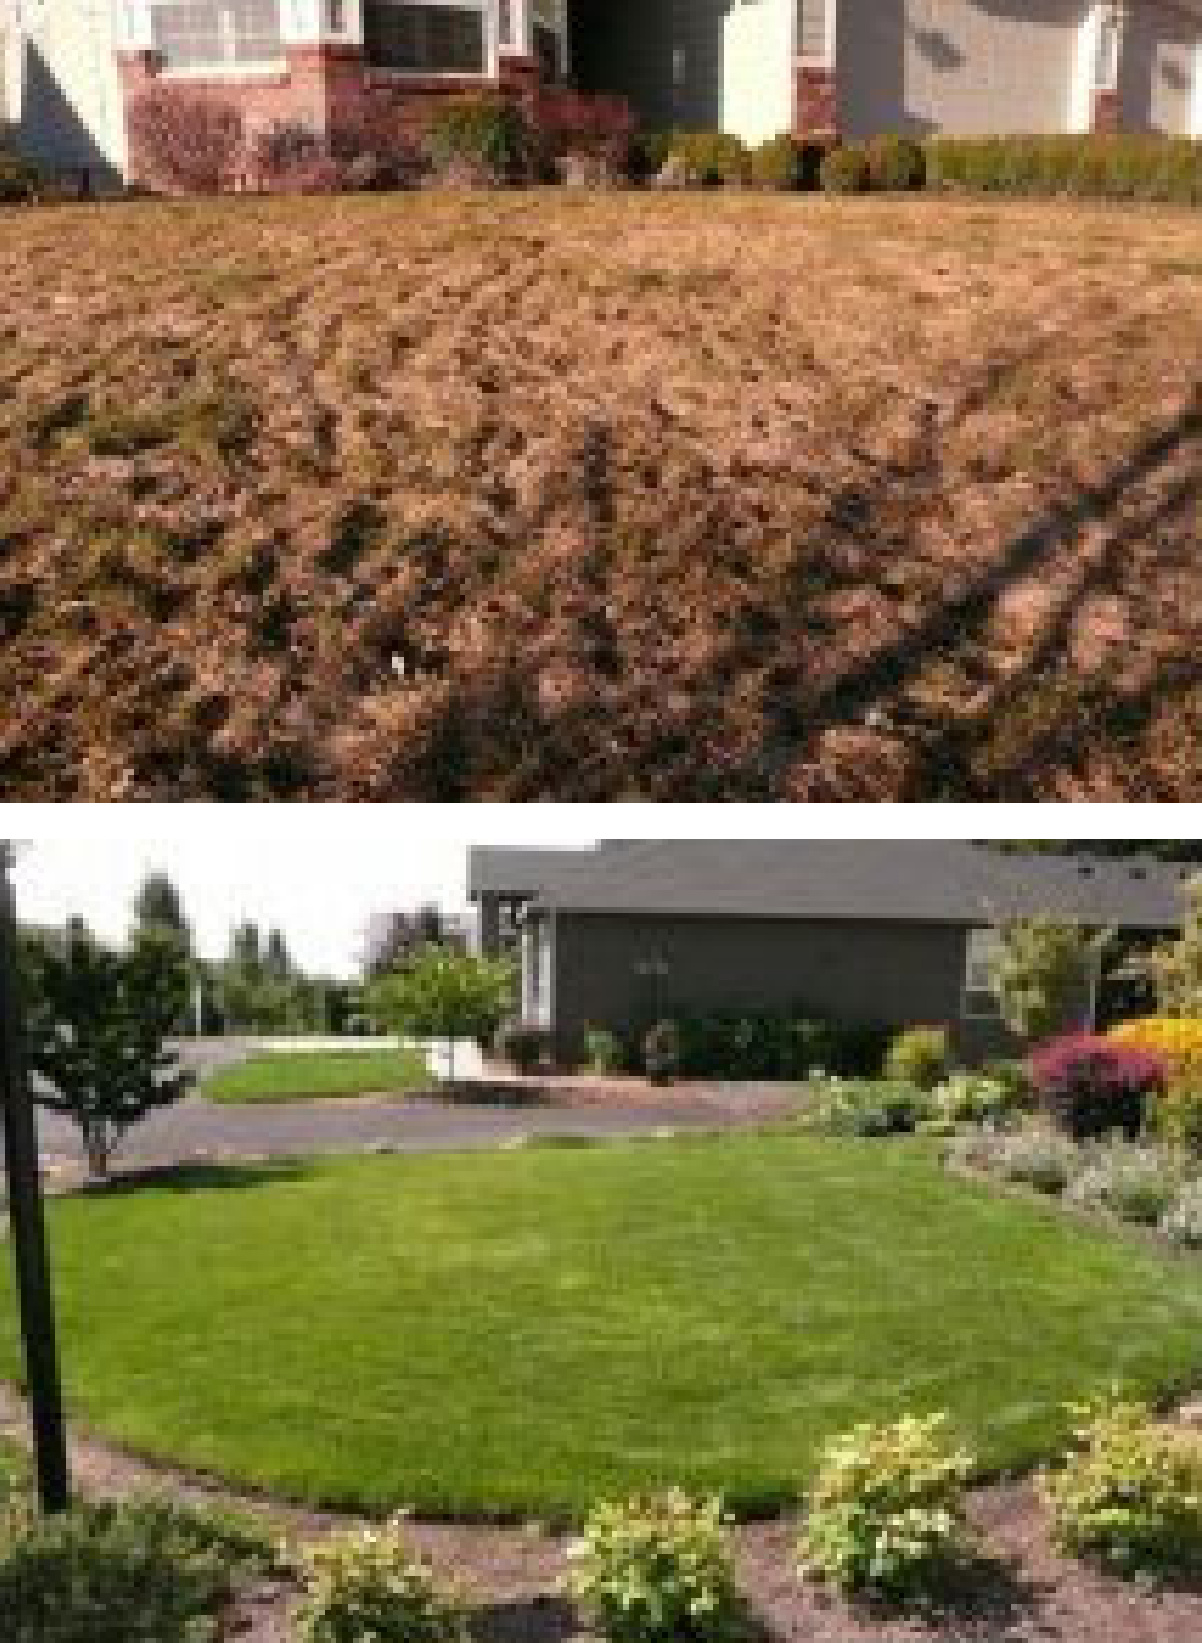 nature's lawn before and after pictures